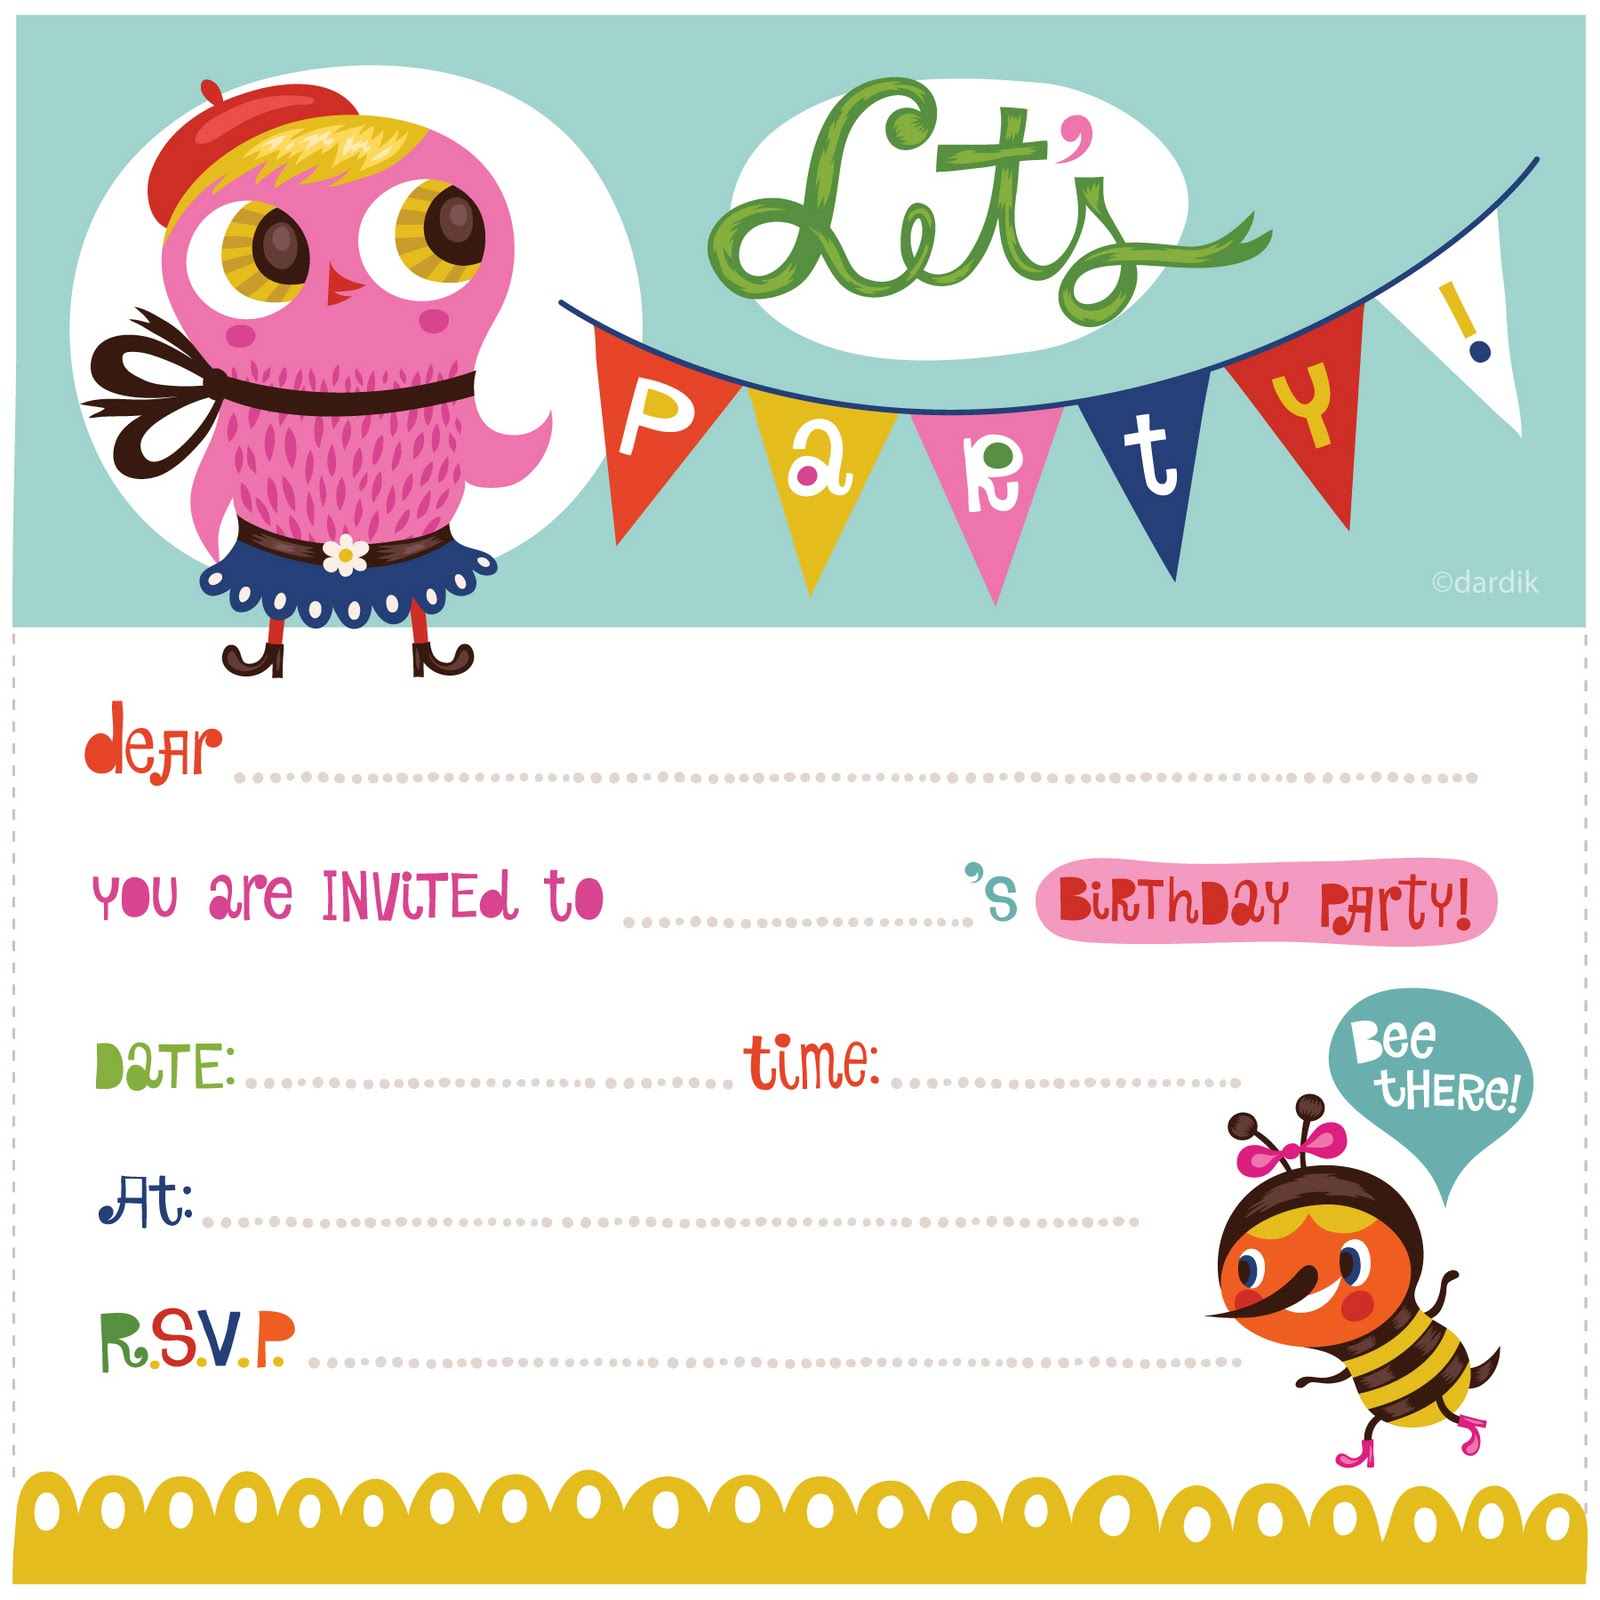 Bday invite demirediffusion orange you lucky my printable birthday invitation filmwisefo